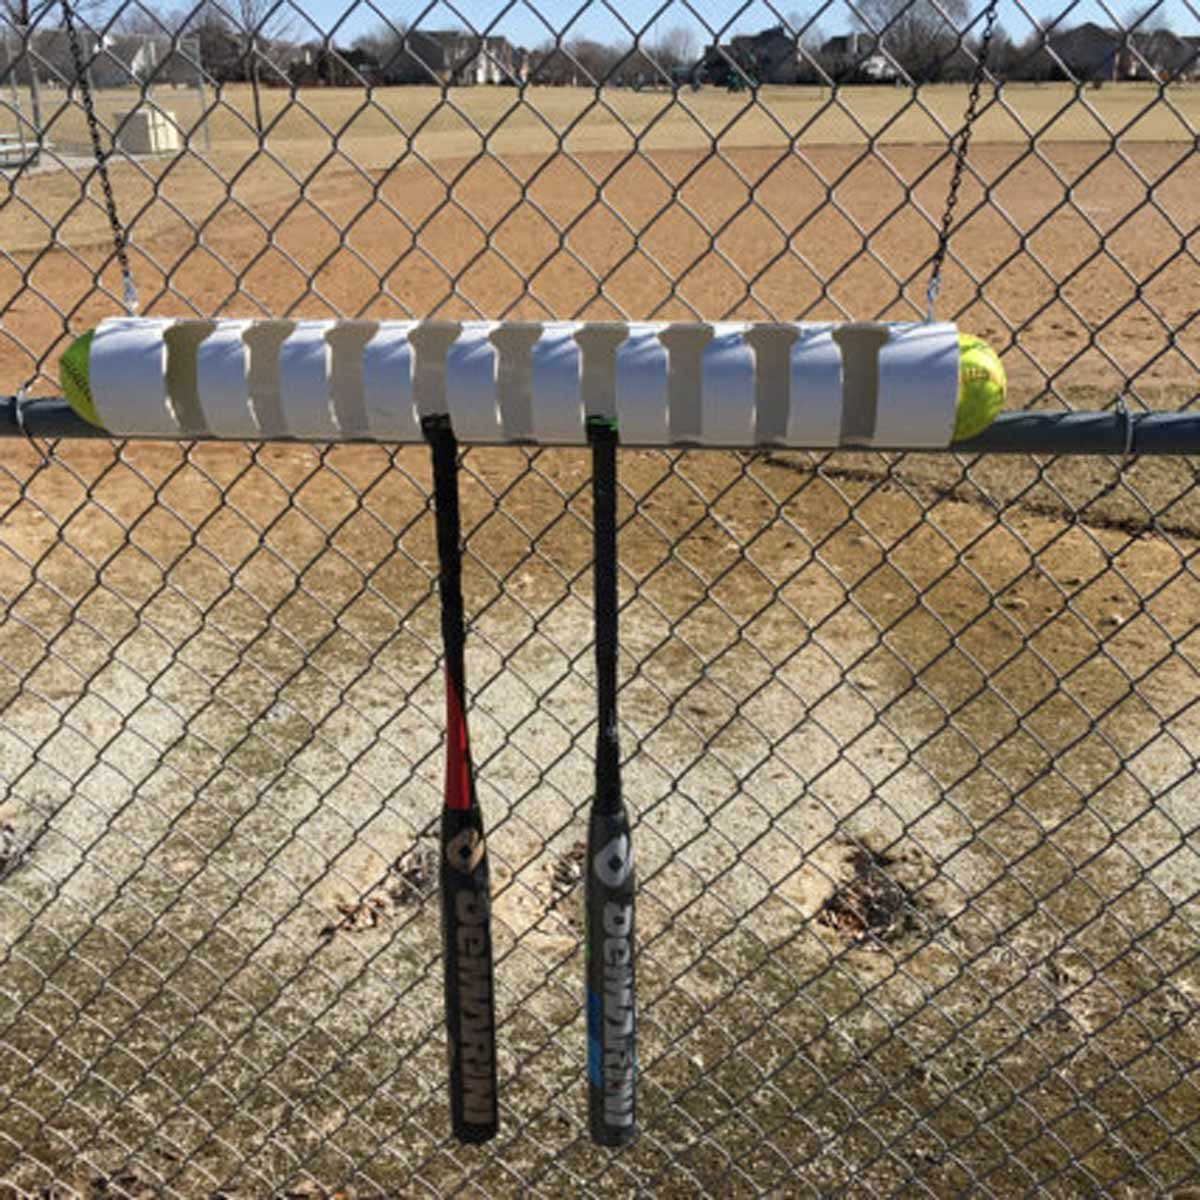 pvc bat and ball holder